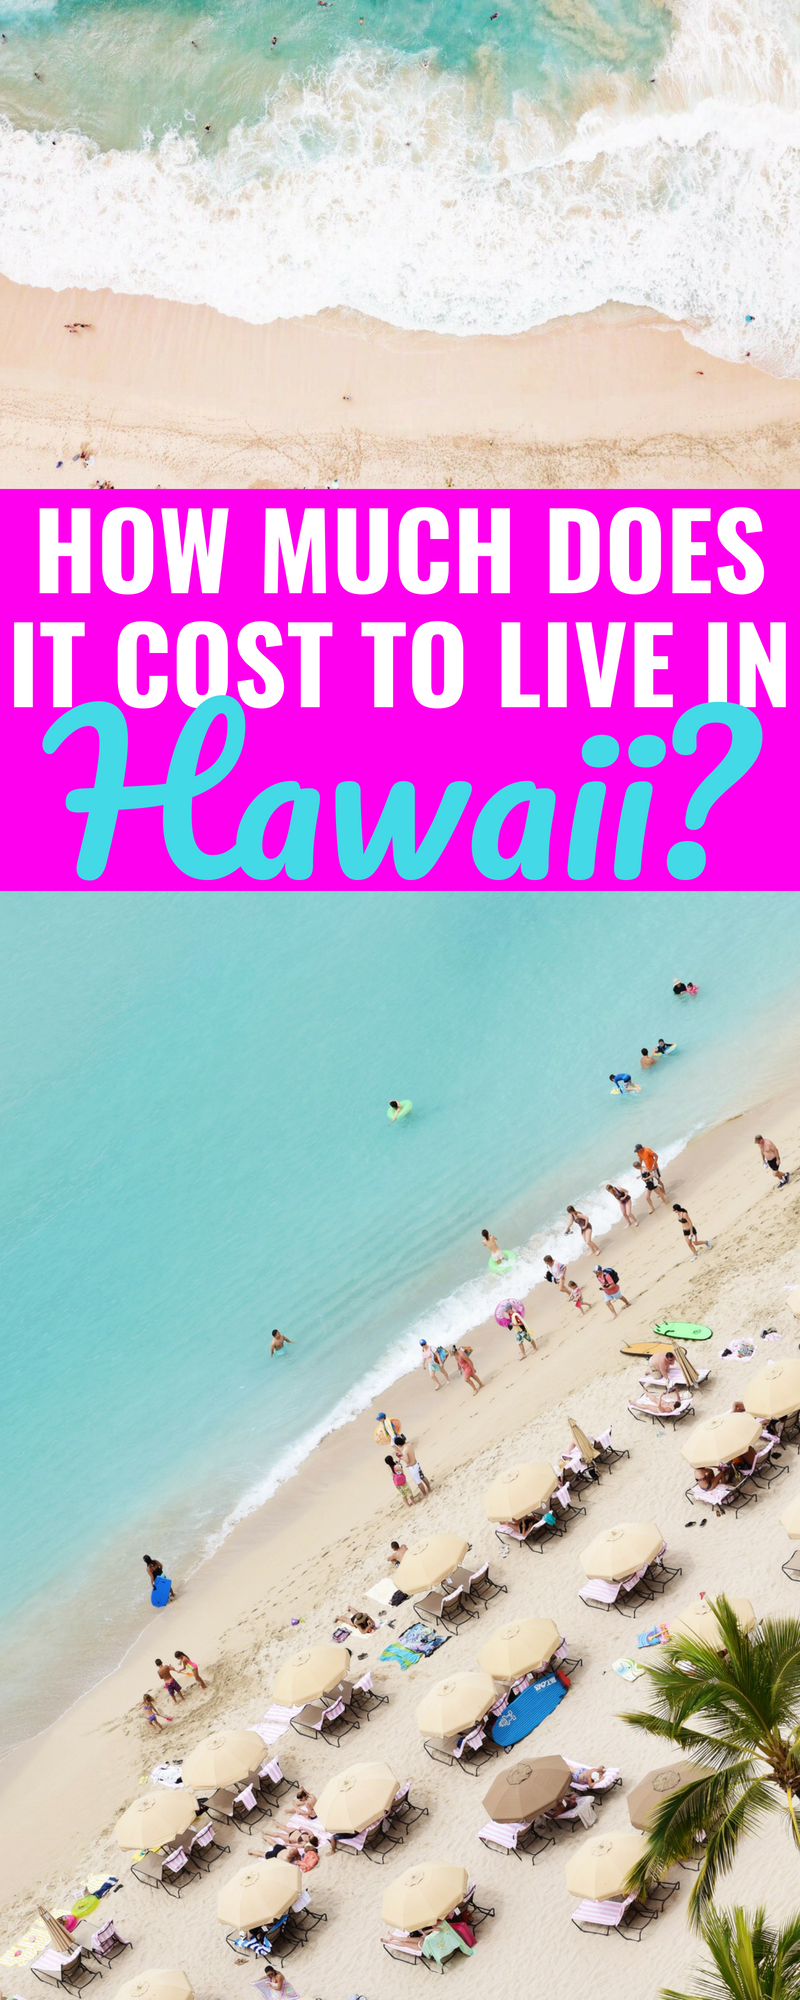 How Much Does It Cost To Live In Hawaii? - Average Cost of Living In Hawaii - What Is The Cost Of Living In Hawaii - Price Of Living In Hawaii - Living Expenses Hawaii - Hawaii Cost Of Living - Budget For Hawaii - Communikait by Kait Hanson #hawaii #oahu #budget #finances #military #costoflivinginhawaii